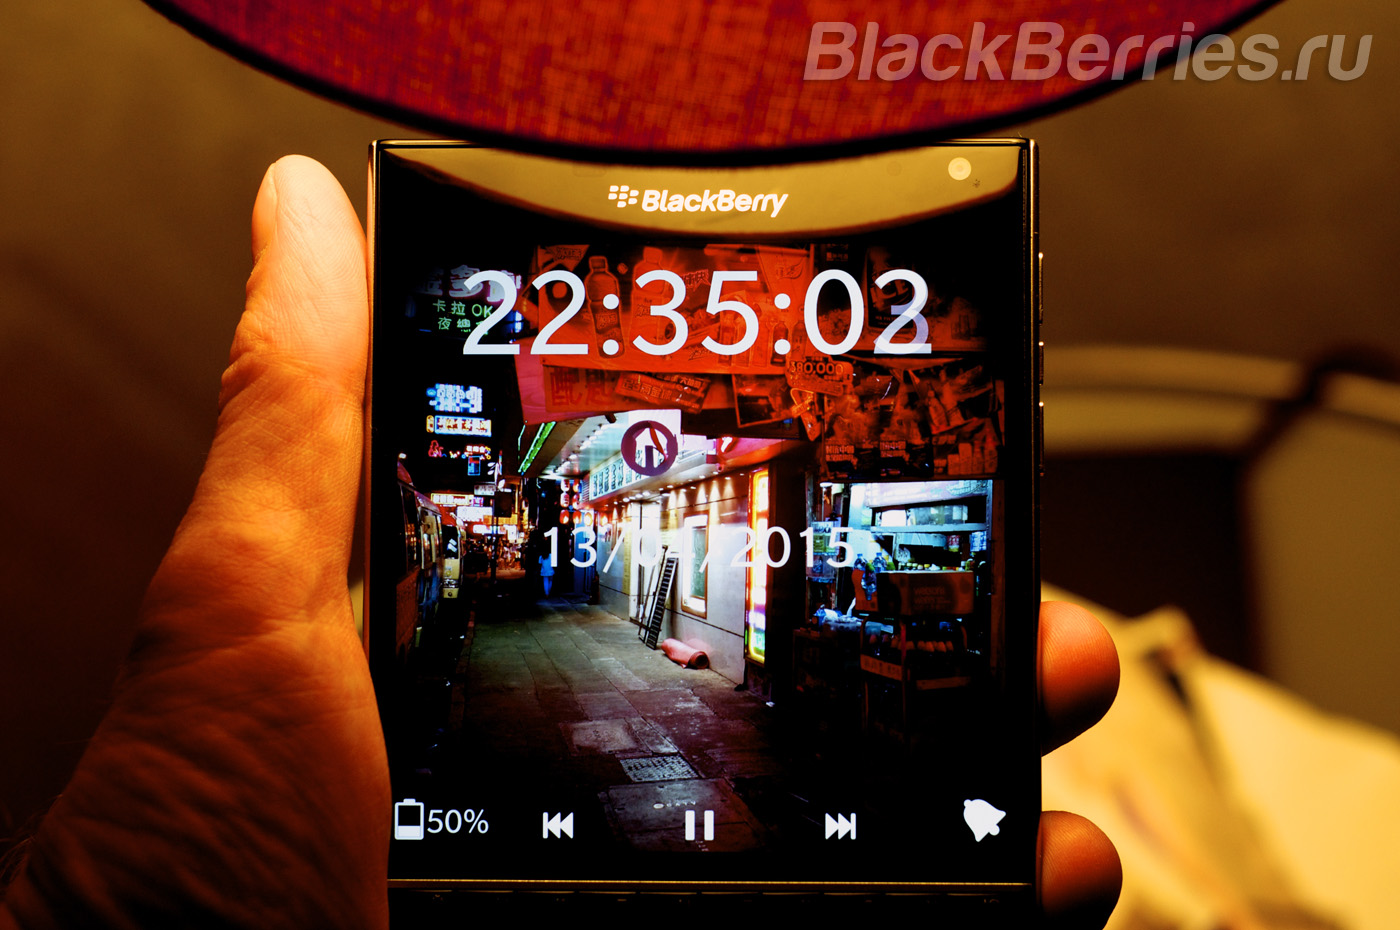 BlackBerry-Passport-Nightly-Clock